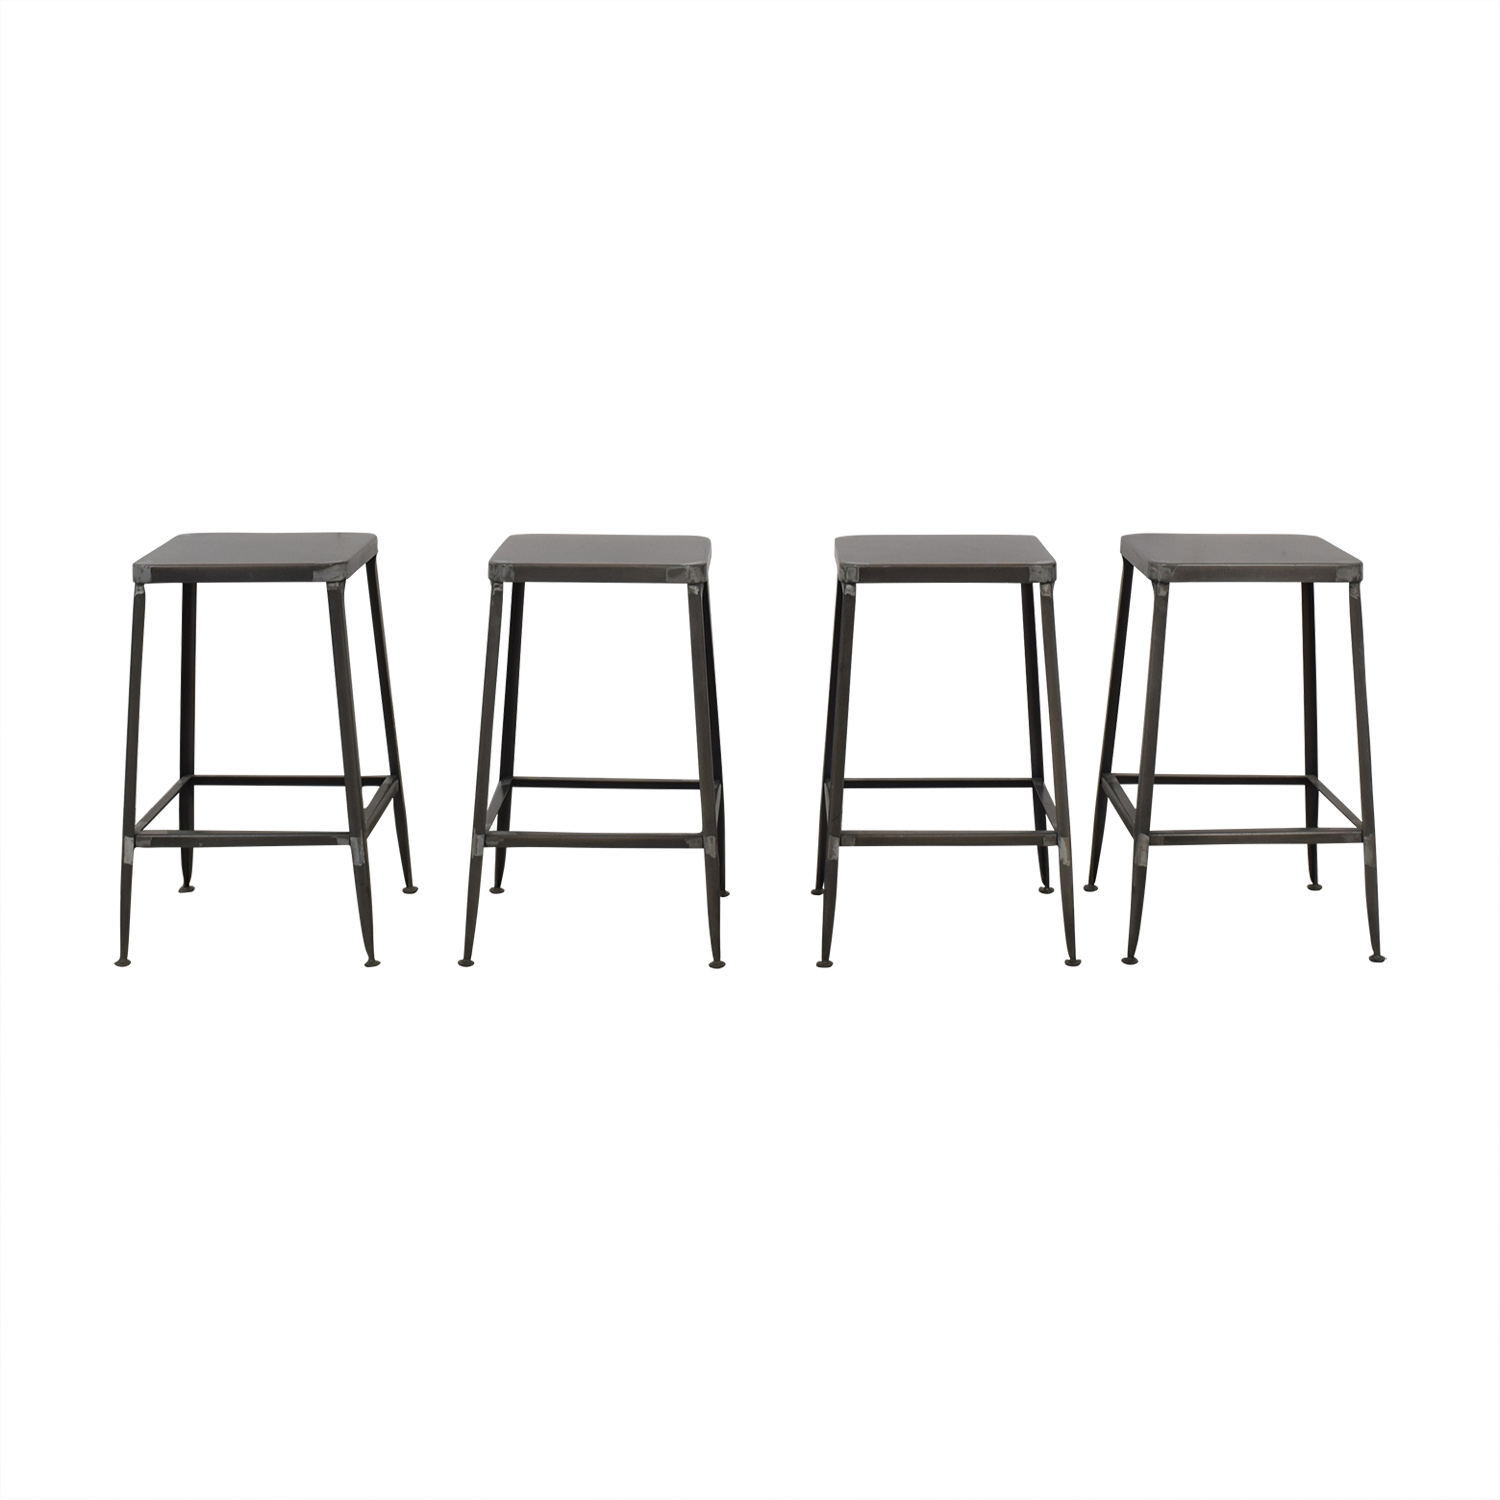 CB2 CB2 Flint Steel Counter Stools discount